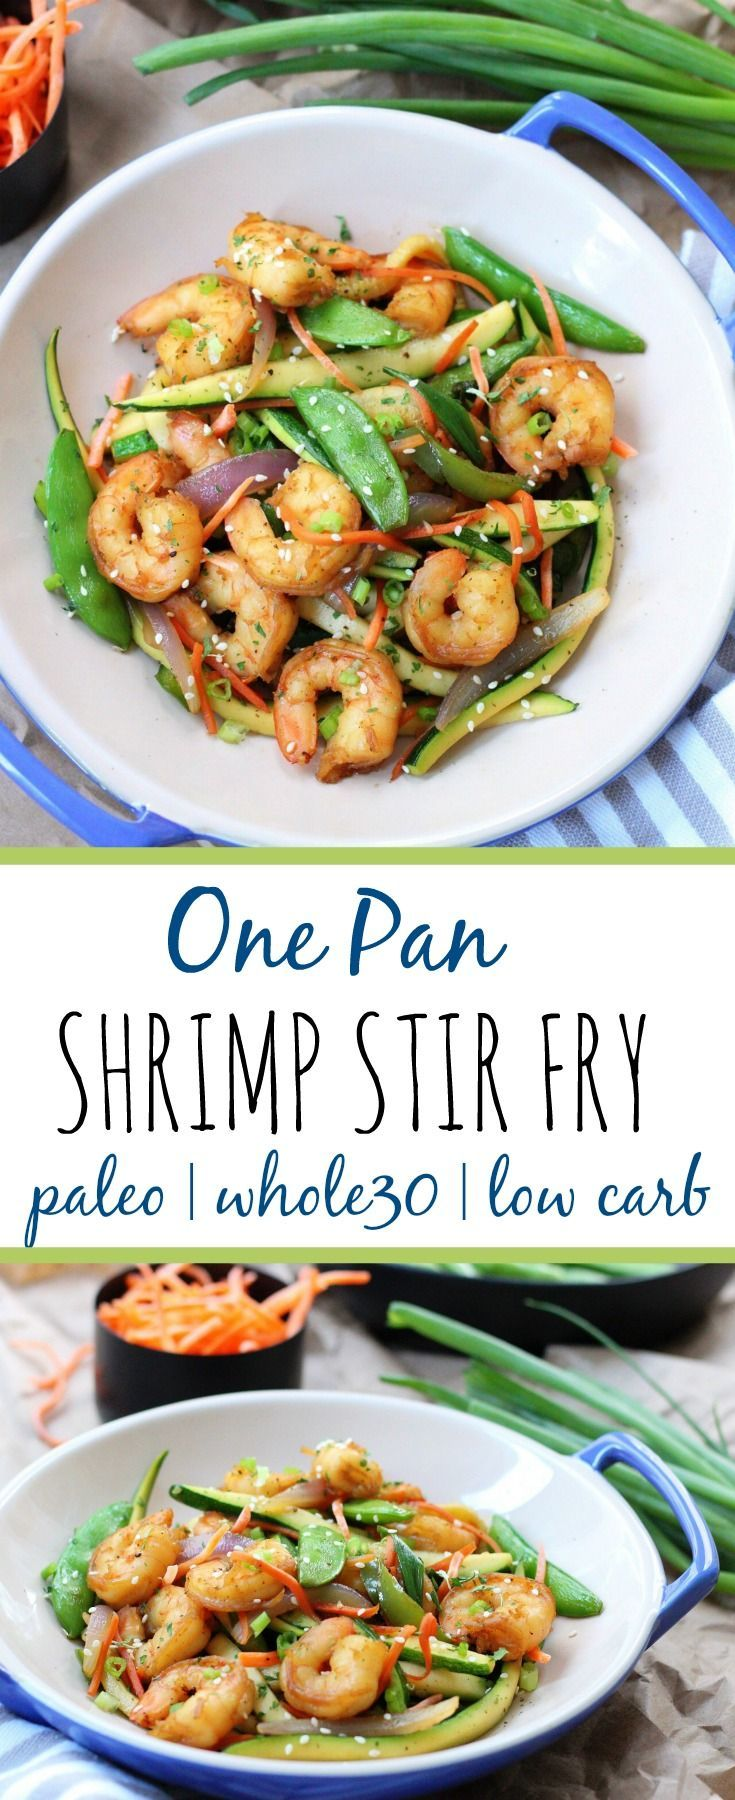 This easy shrimp stir fry recipe is a great Whole30 dinner! If you love stir fry, you'll love this low carb version! Using zucchini noodles lets you eat this flavorful paleo meal, without the carbs! Plus the best tips for cooking with gelatin are included! #paleostirfry #paleoshrimp #lowcarbstirfry #whole30recipes #whole30shrimp via @paleobailey